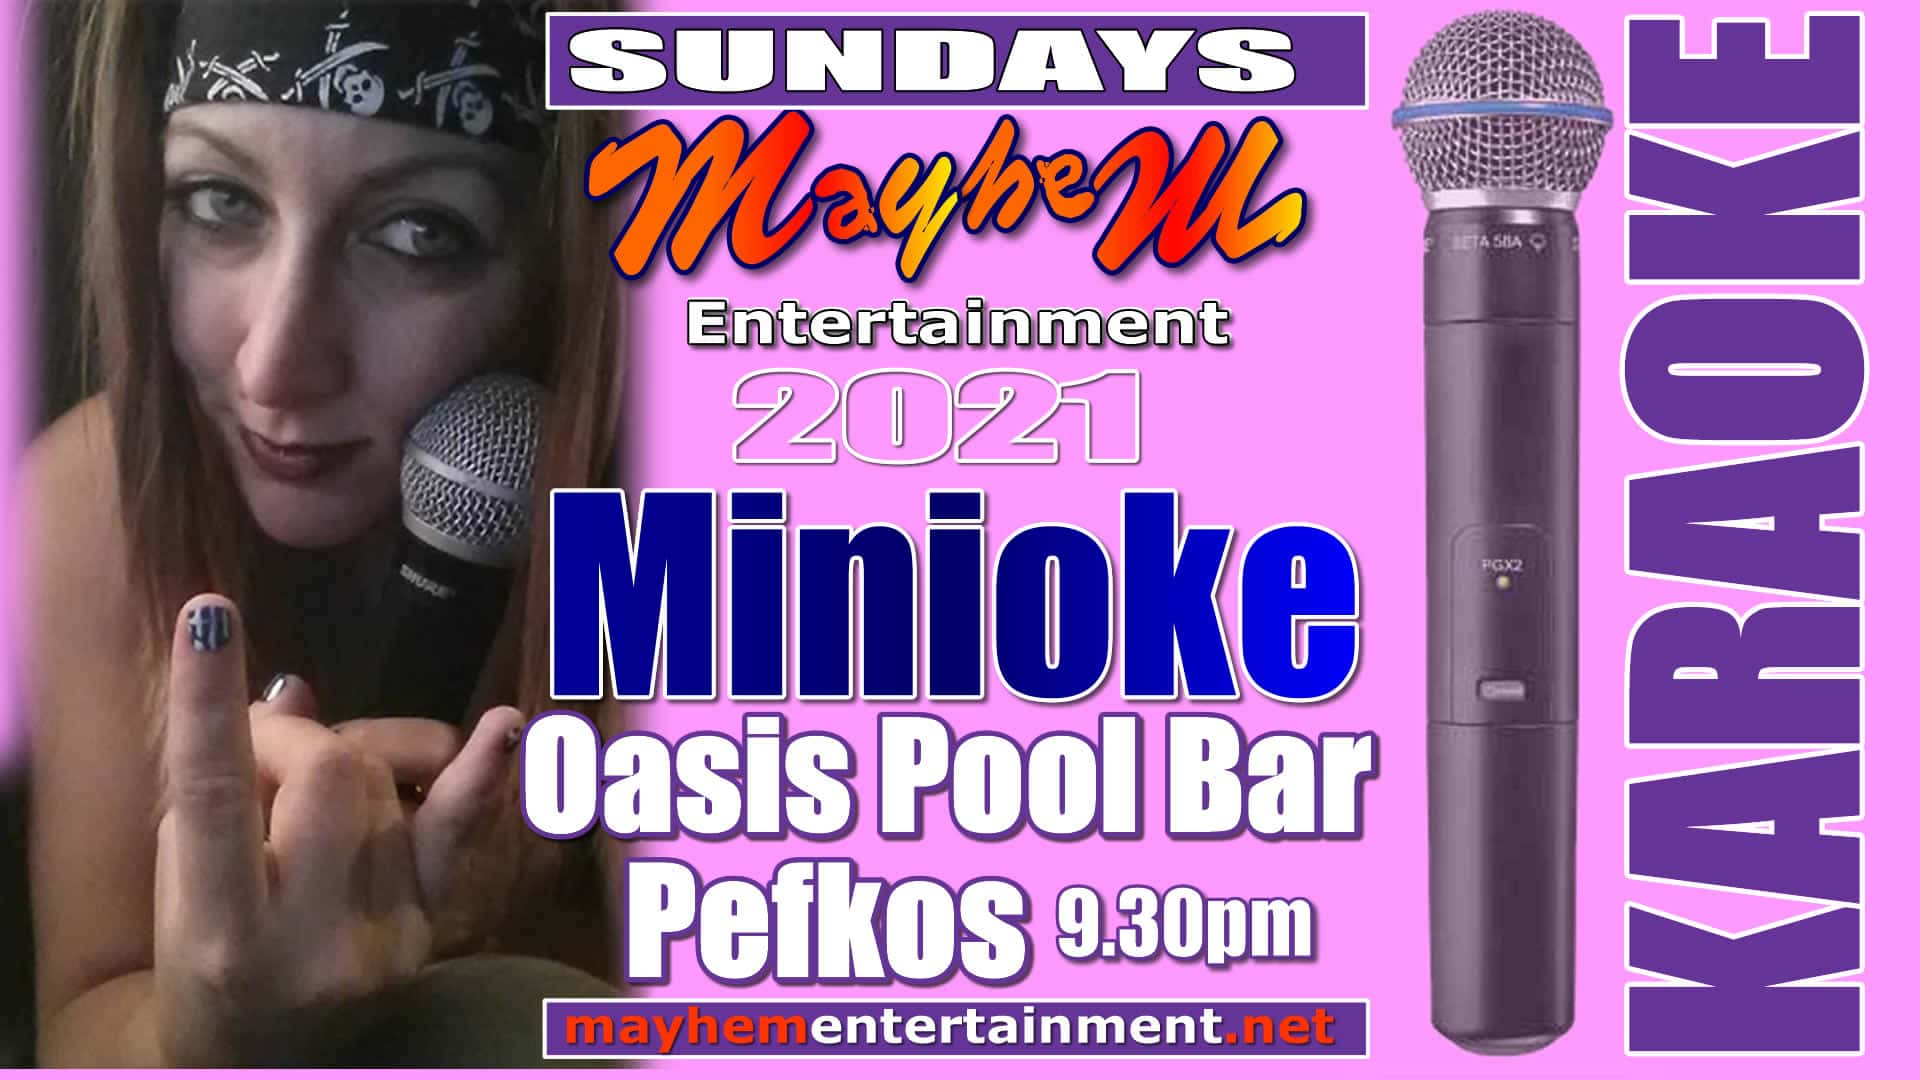 Sunday nights at Pefkos in The Oassis Pool and bar